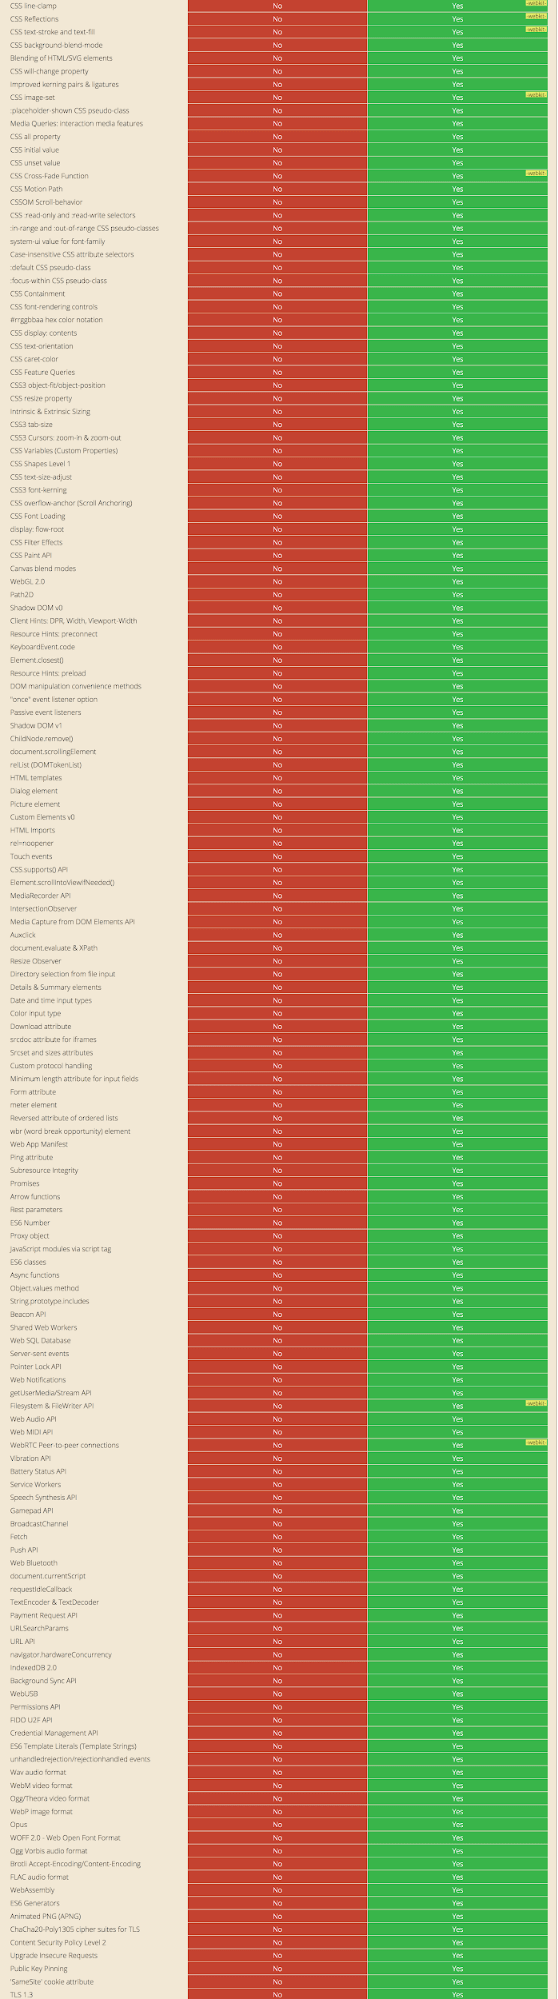 A list from caniuse.com of features that are supported in Chrome but unavailable in IE11. This is a truncated and incomplete screenshot of an extraordinarily long list.